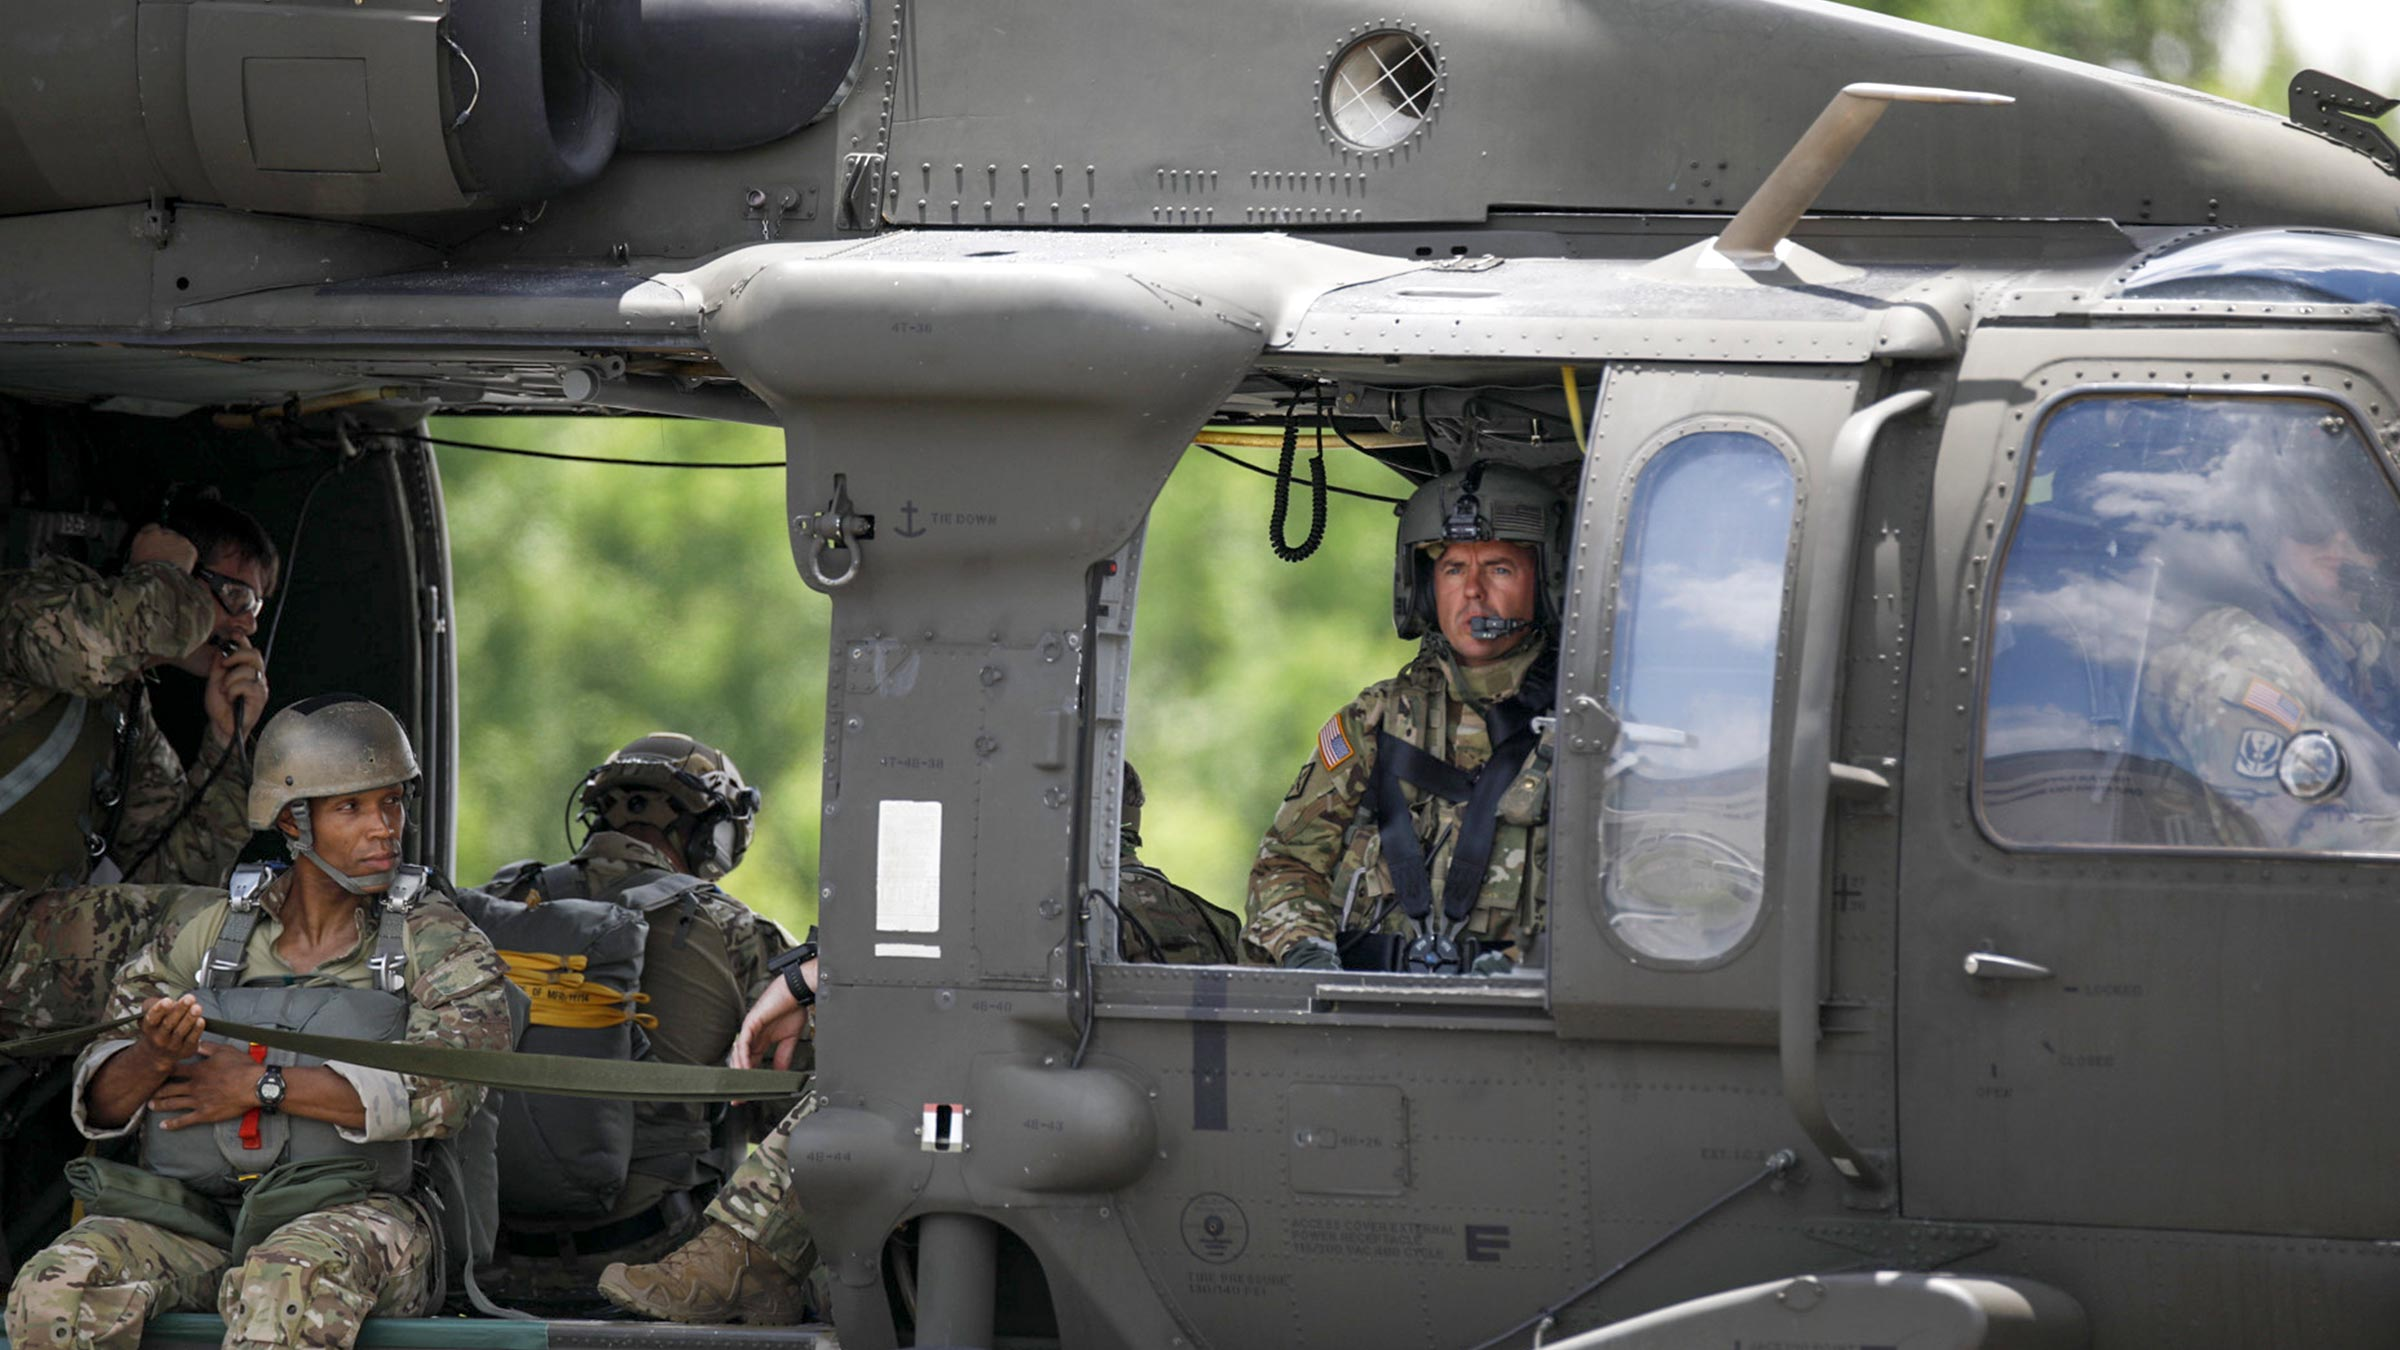 members of the national guard ride in a helicopter